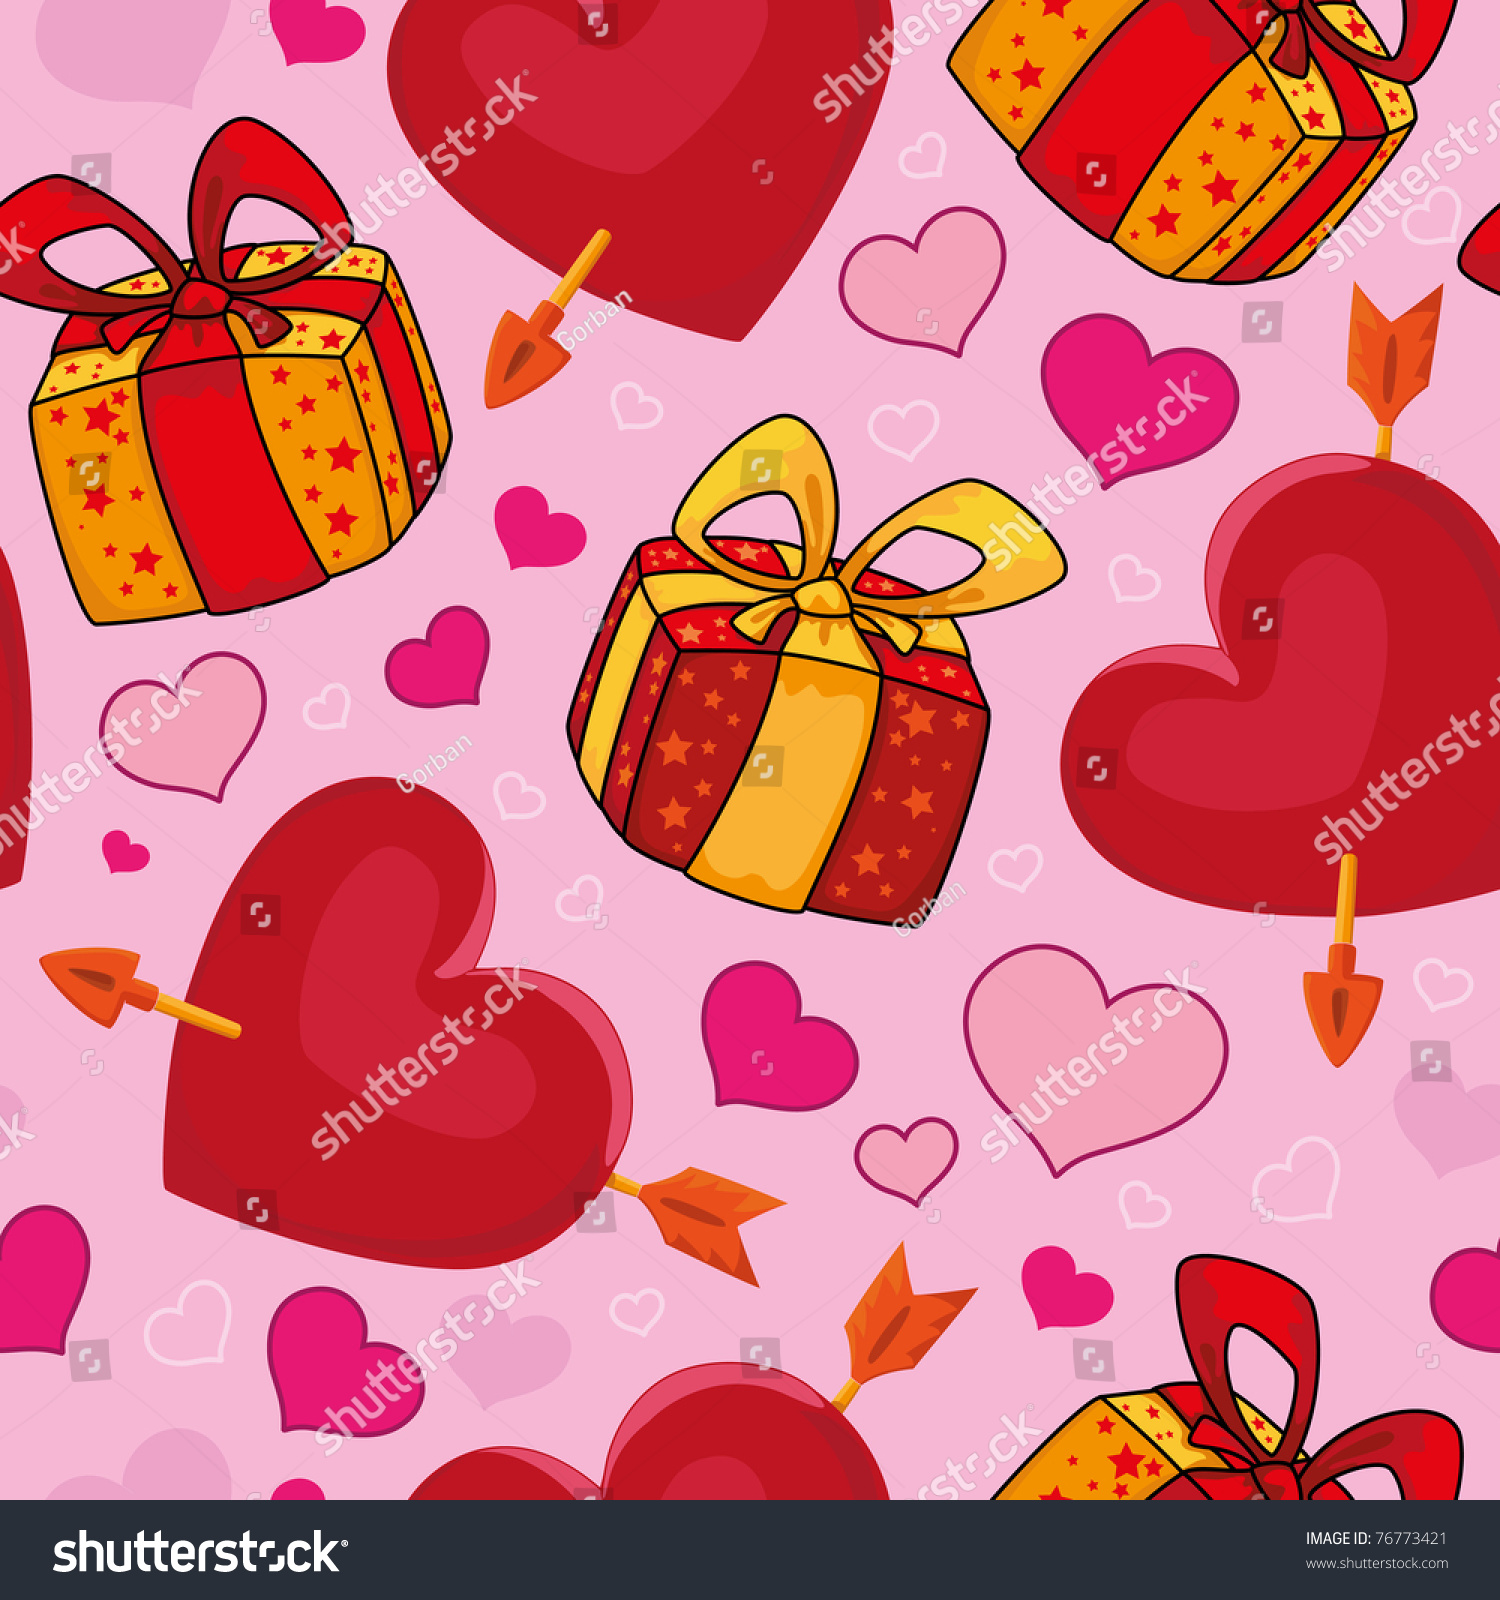 Raster Illustration Of A Seamless Gifts And Hearts